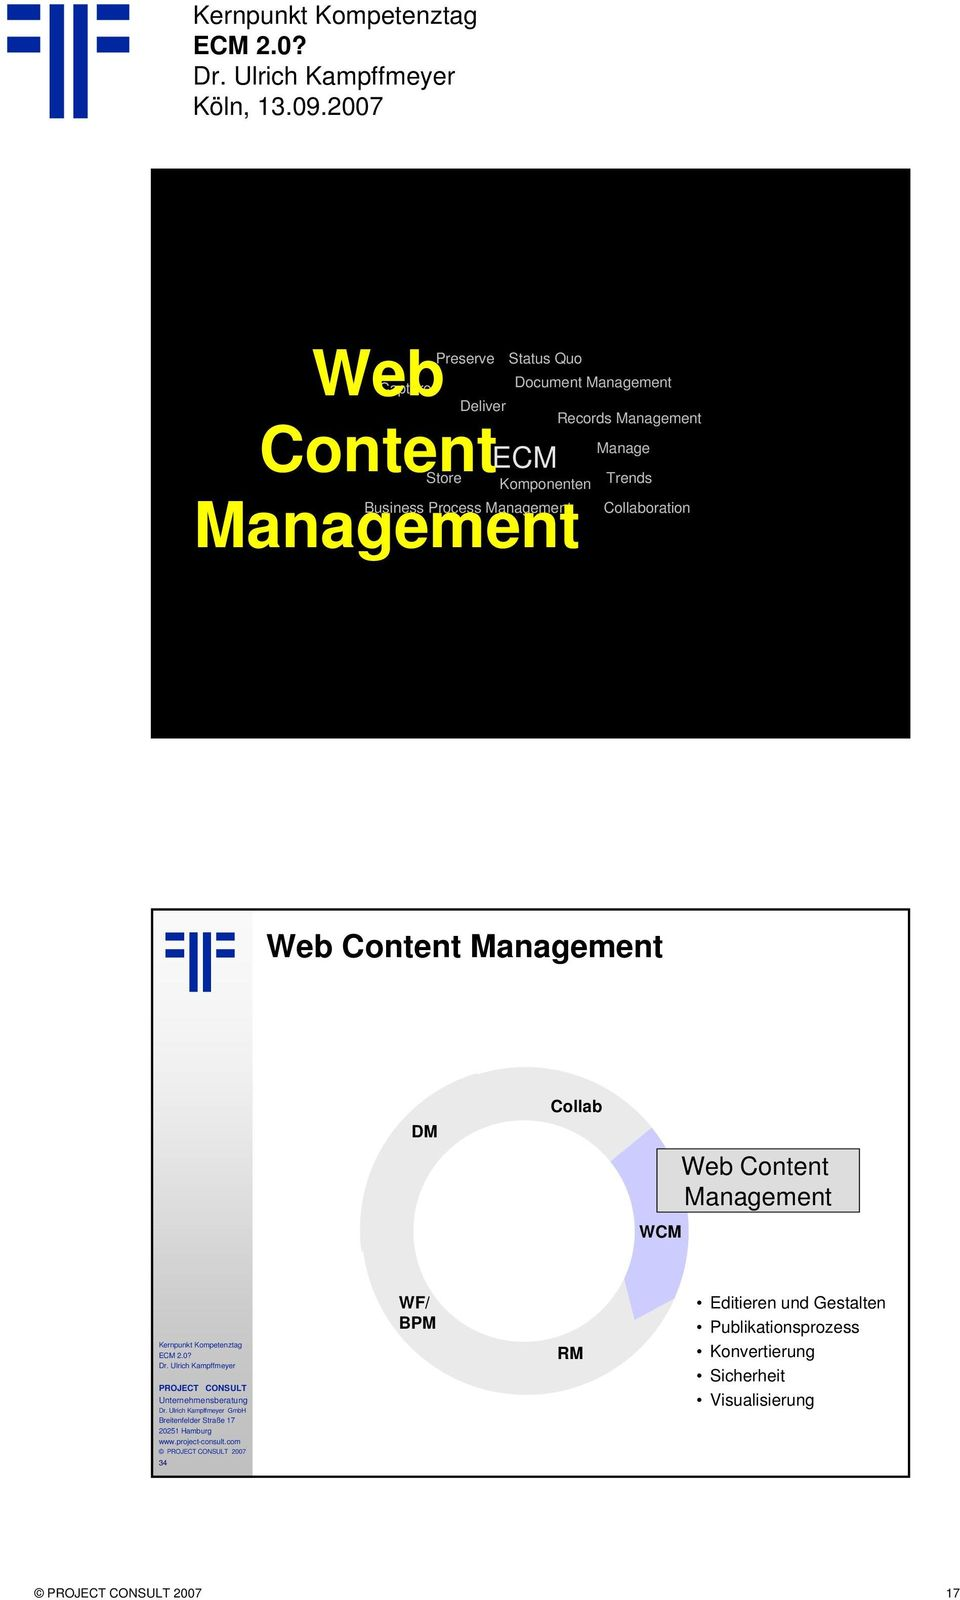 GmbH 33 Web Content Management DM STORE Collab WCM Web Content Management GmbH WF/ BPM